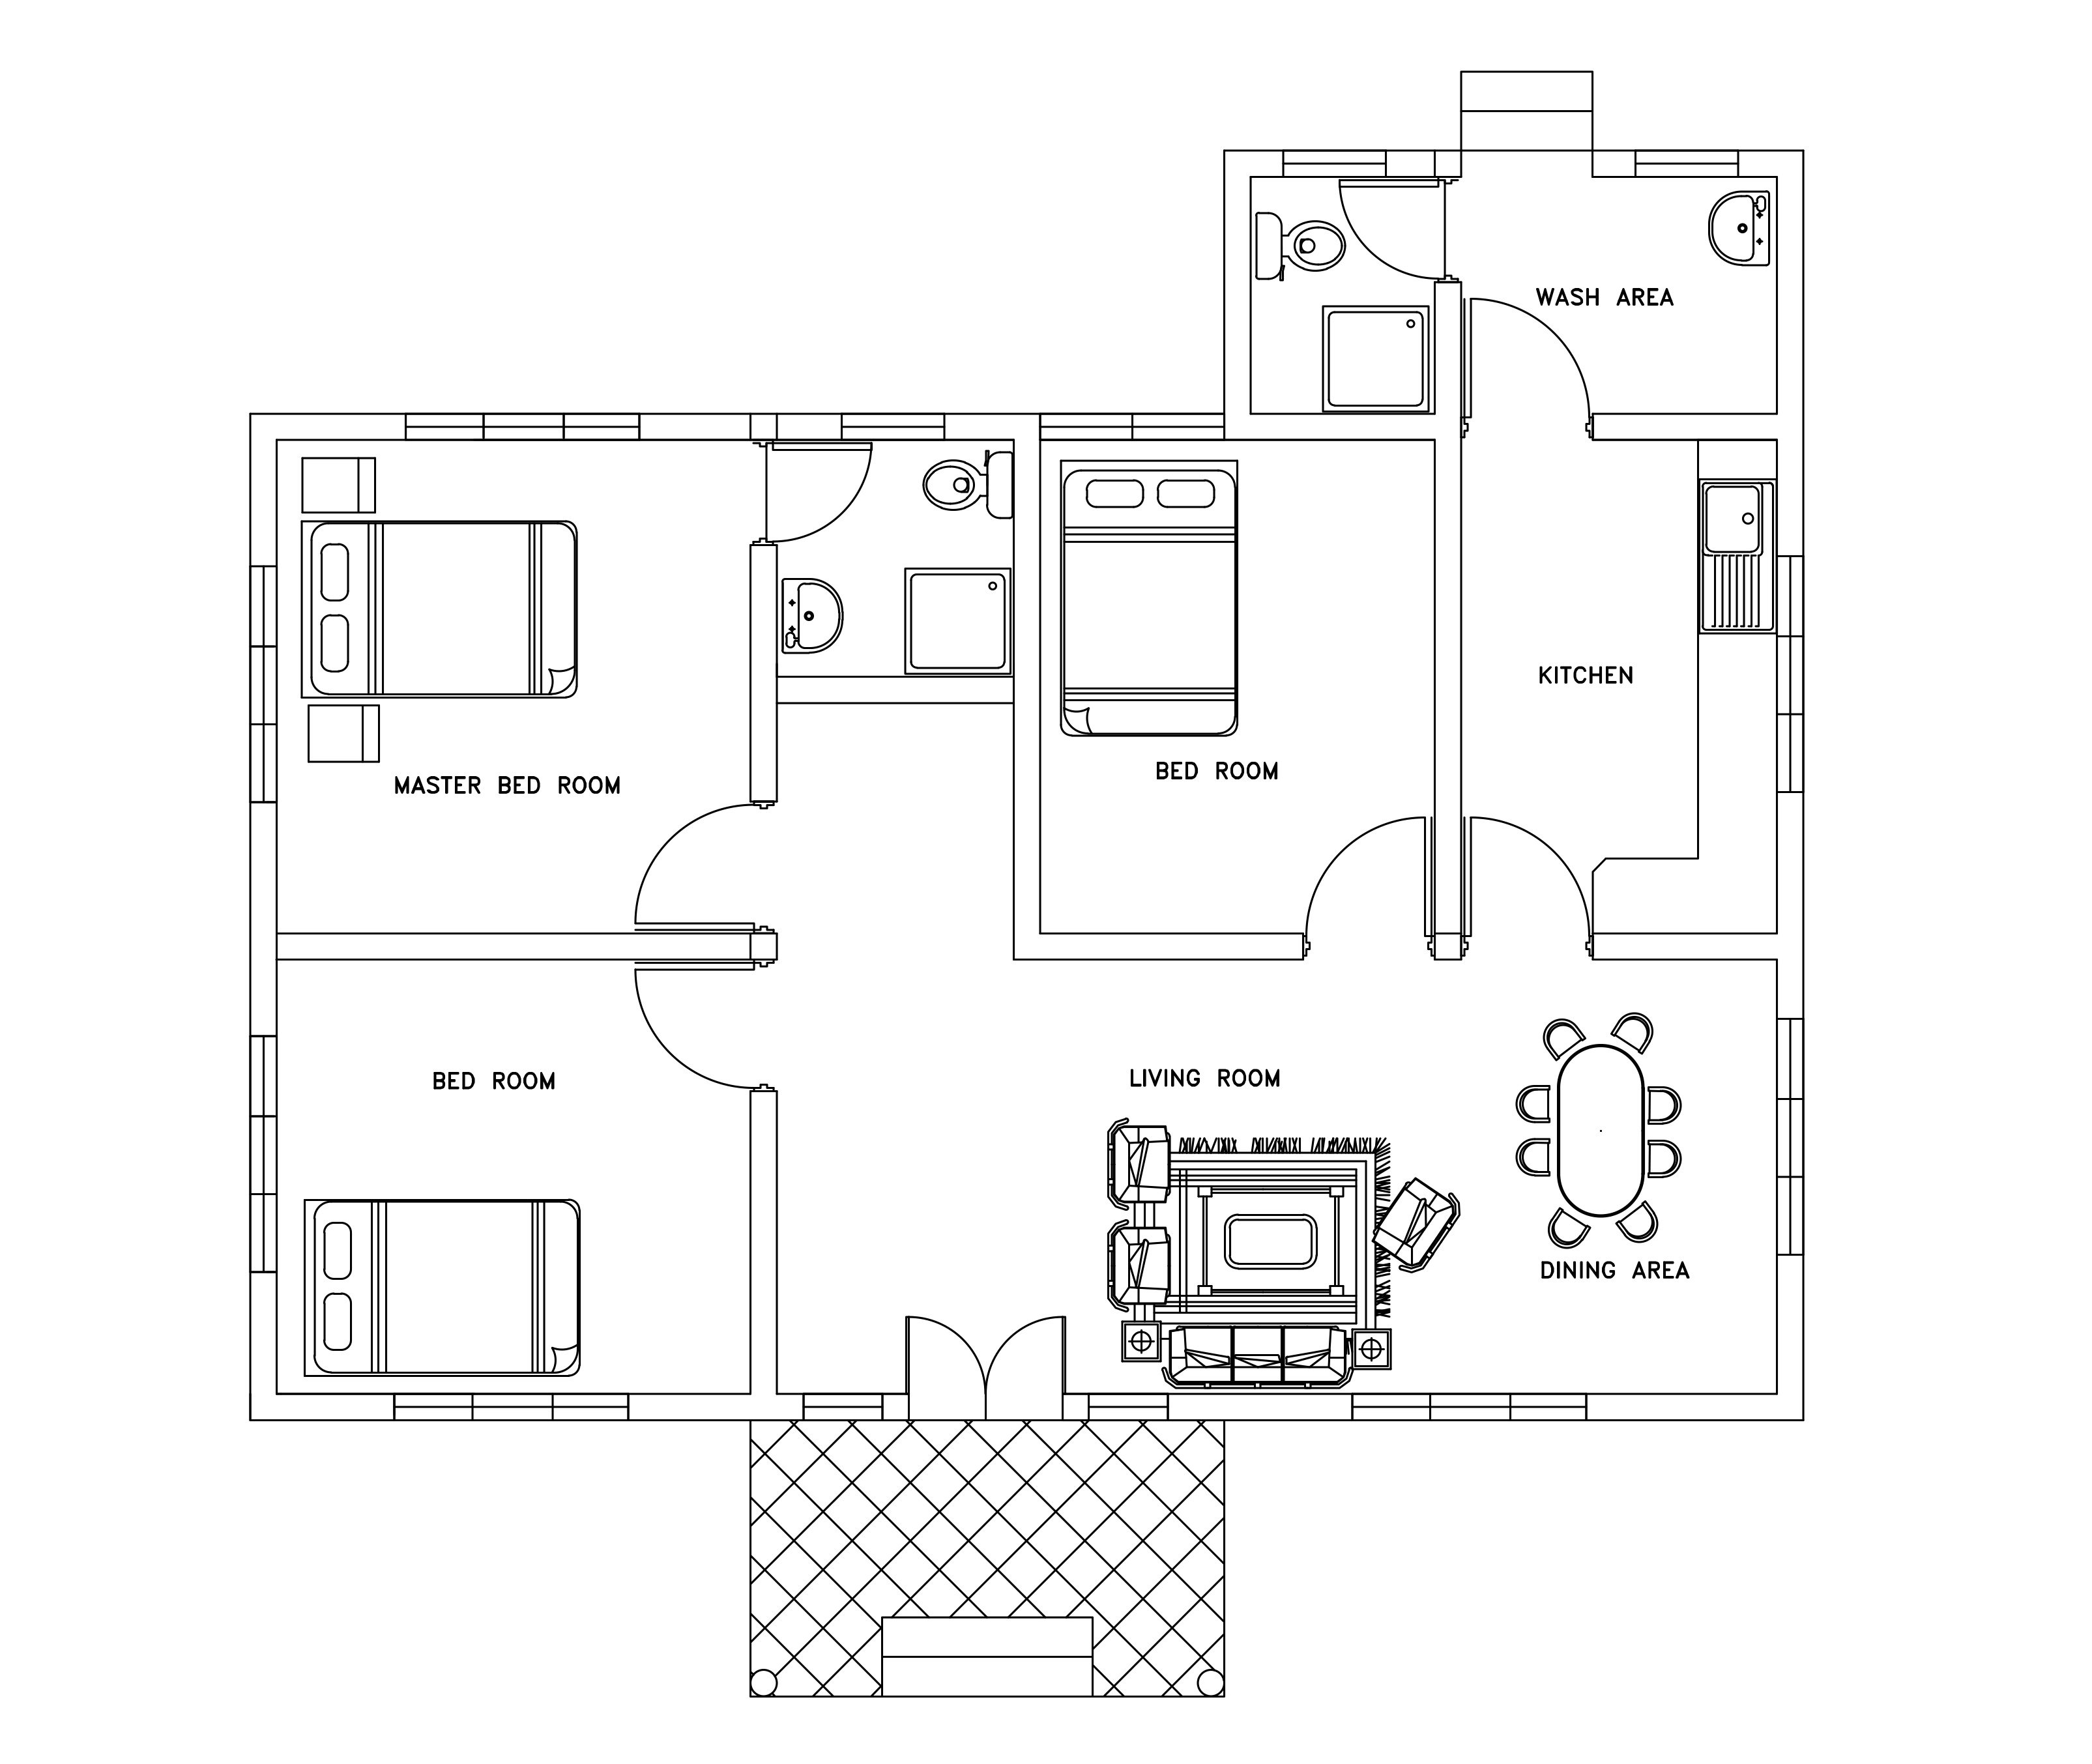 Single story three bed room small house plan free download with dwg ...